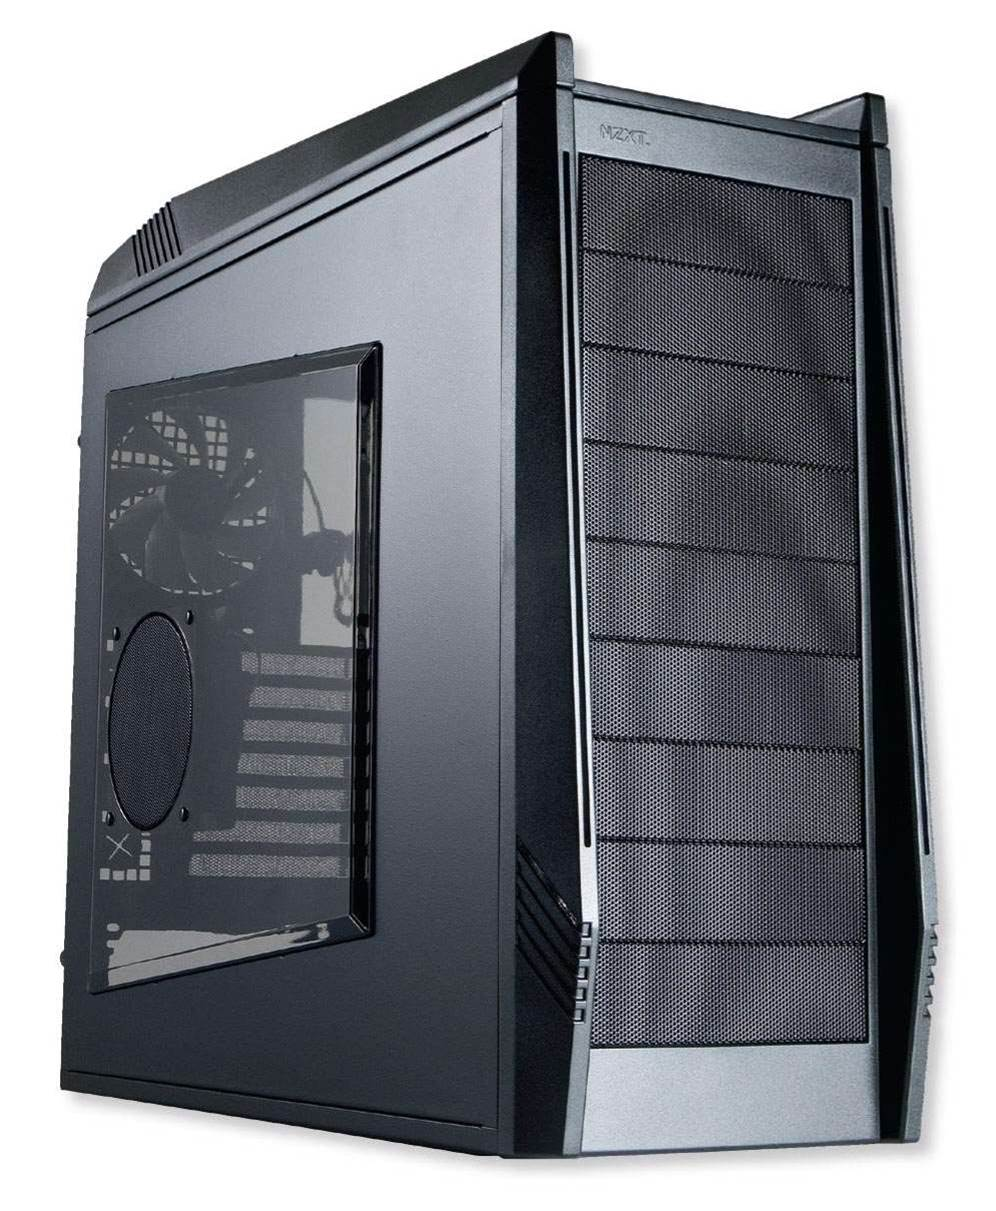 NZXT's Tempest Evo packed full of fans